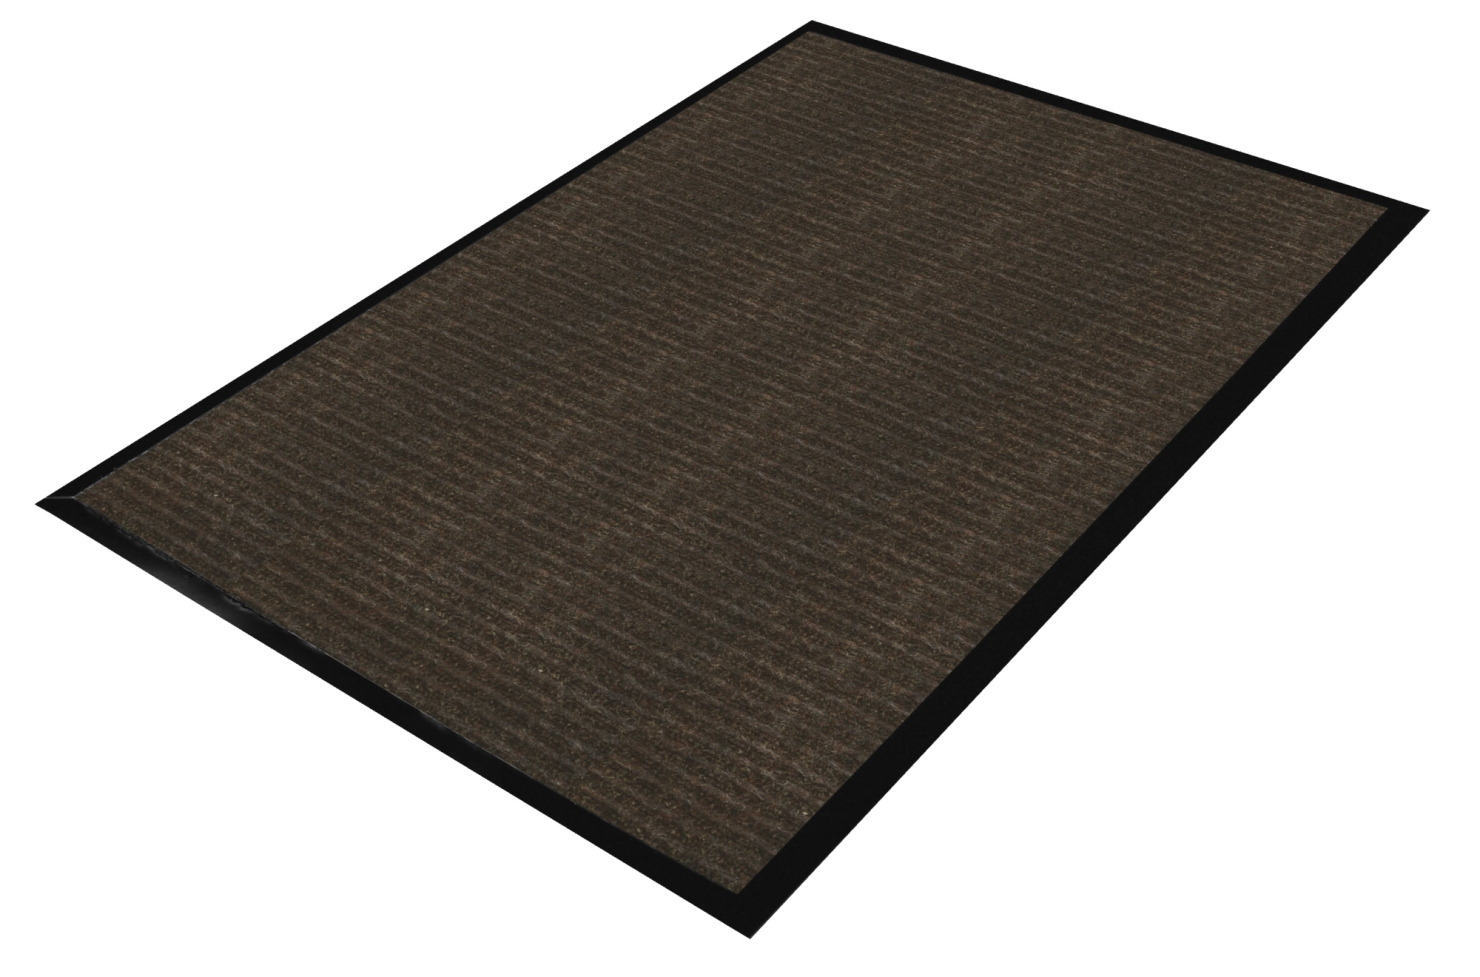 Genuine Joe Golden Series Dual Rib Indoor Floor Mat; 3 X 5 In; Polypropylene/vinyl Backing; Chocolate - 1405226 - Martial Arts Martial Arts Floors Mats 1405226